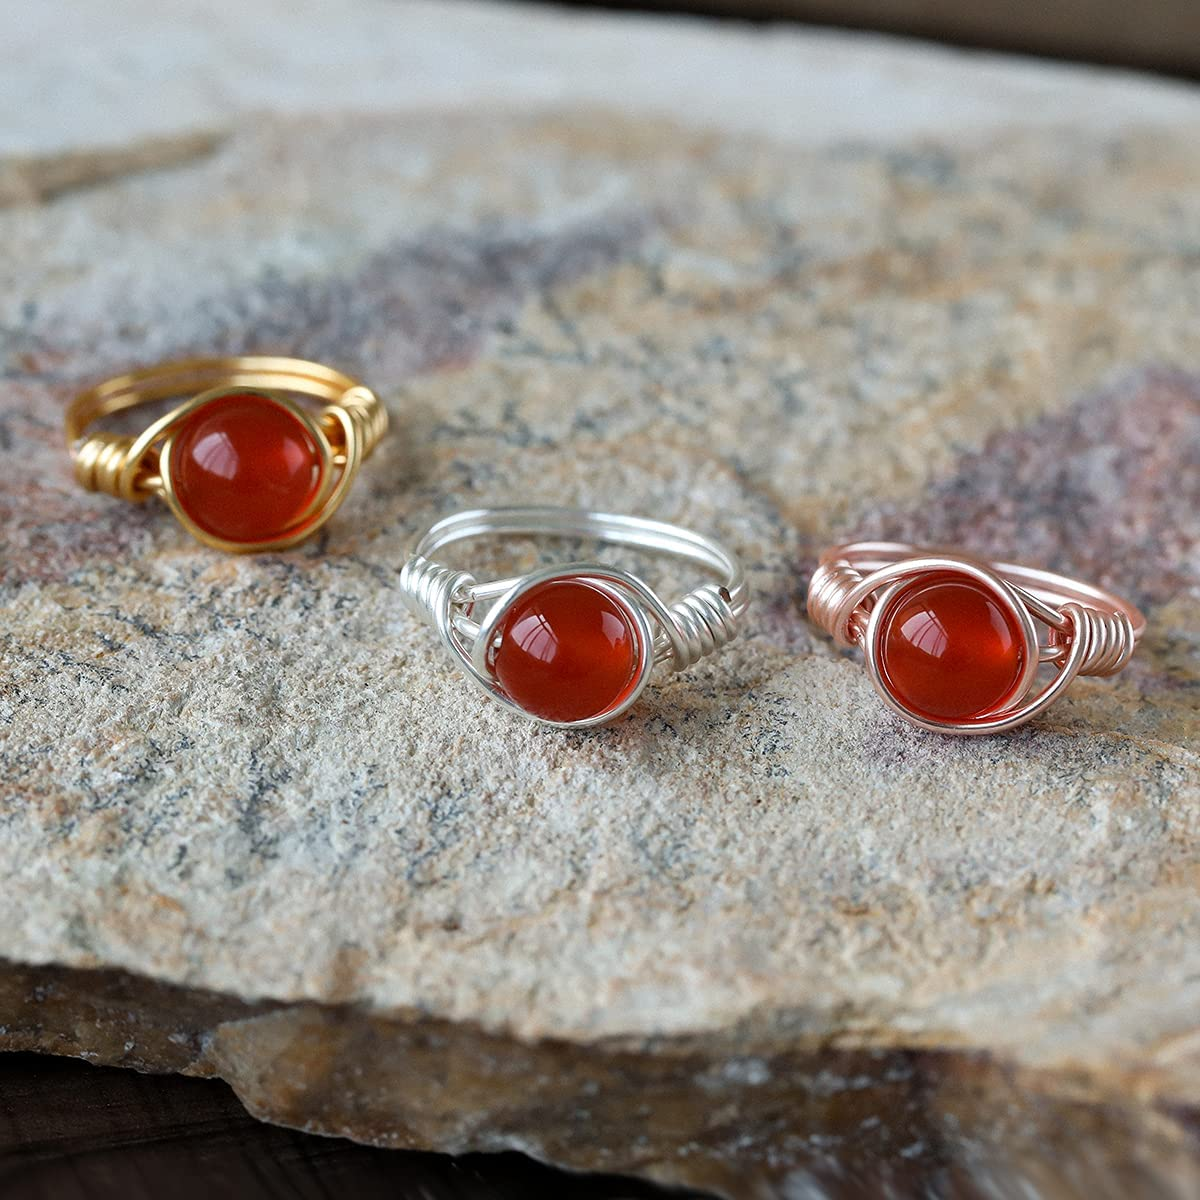 Wishangol Carnelian Crystal Ring, Wire Wrap Real Carnelian Crystal Ring,  Healing Crystal Gold Rings for Women Men Statement Stacking Band Ring  Jewelry